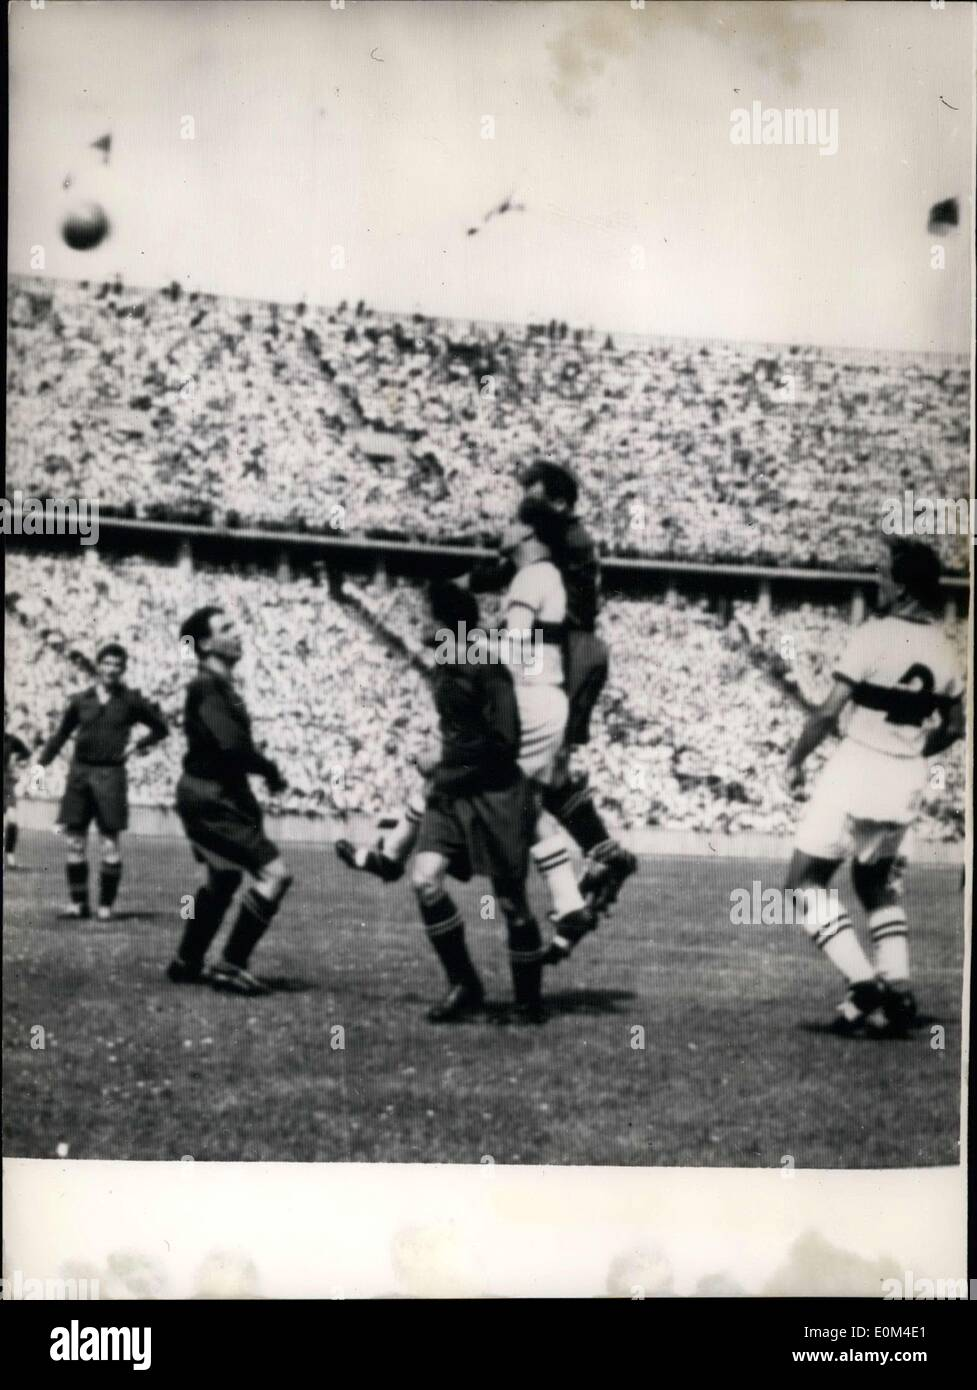 Jun. 21, 1953 - Final game of the German soccer championship in Berlin! In Berlin Olympic Stadium this afternoon two teams, FC Kaiserslautern and VfB Stuttgart will compete in the final round of the German soccer championship. Our picture shows a scene in the goal area. - Stock Image